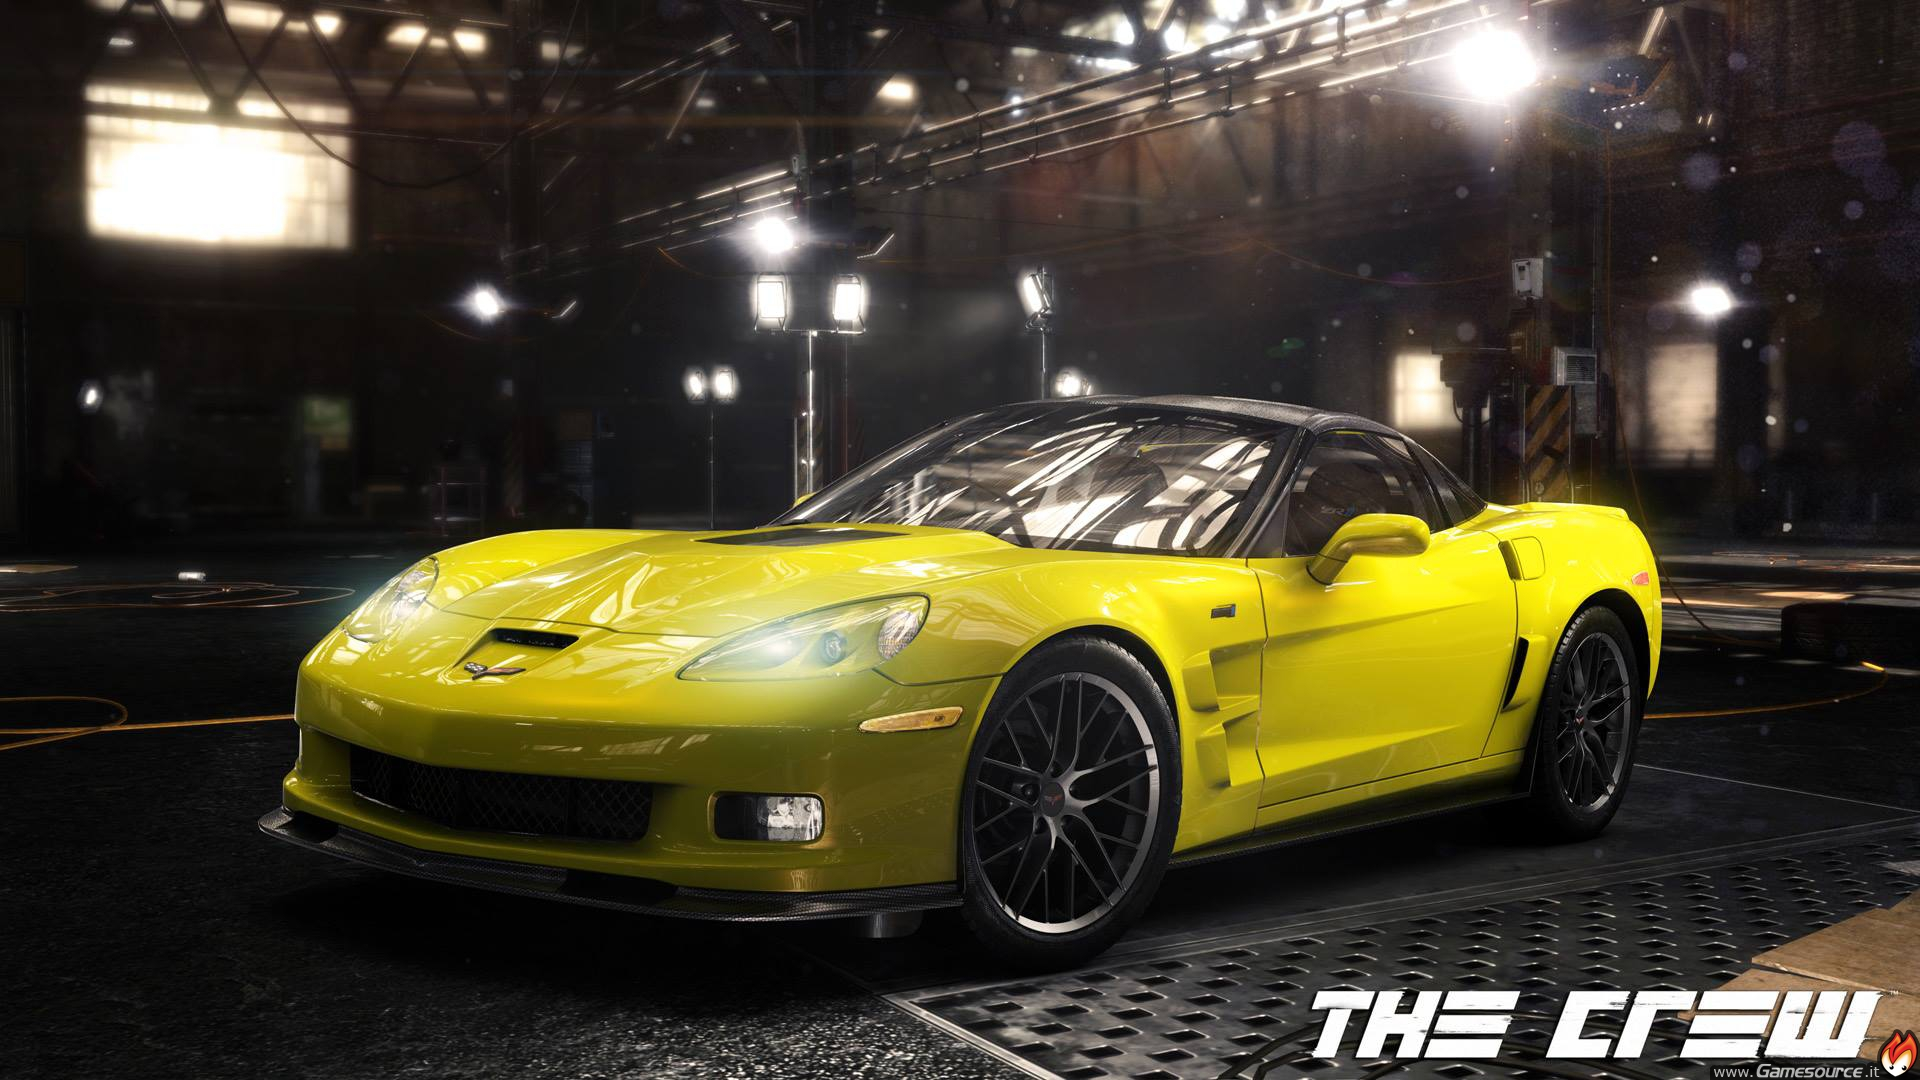 Chevrolet-Corvette-appears-in-latest-screenshot-from-The-Crew